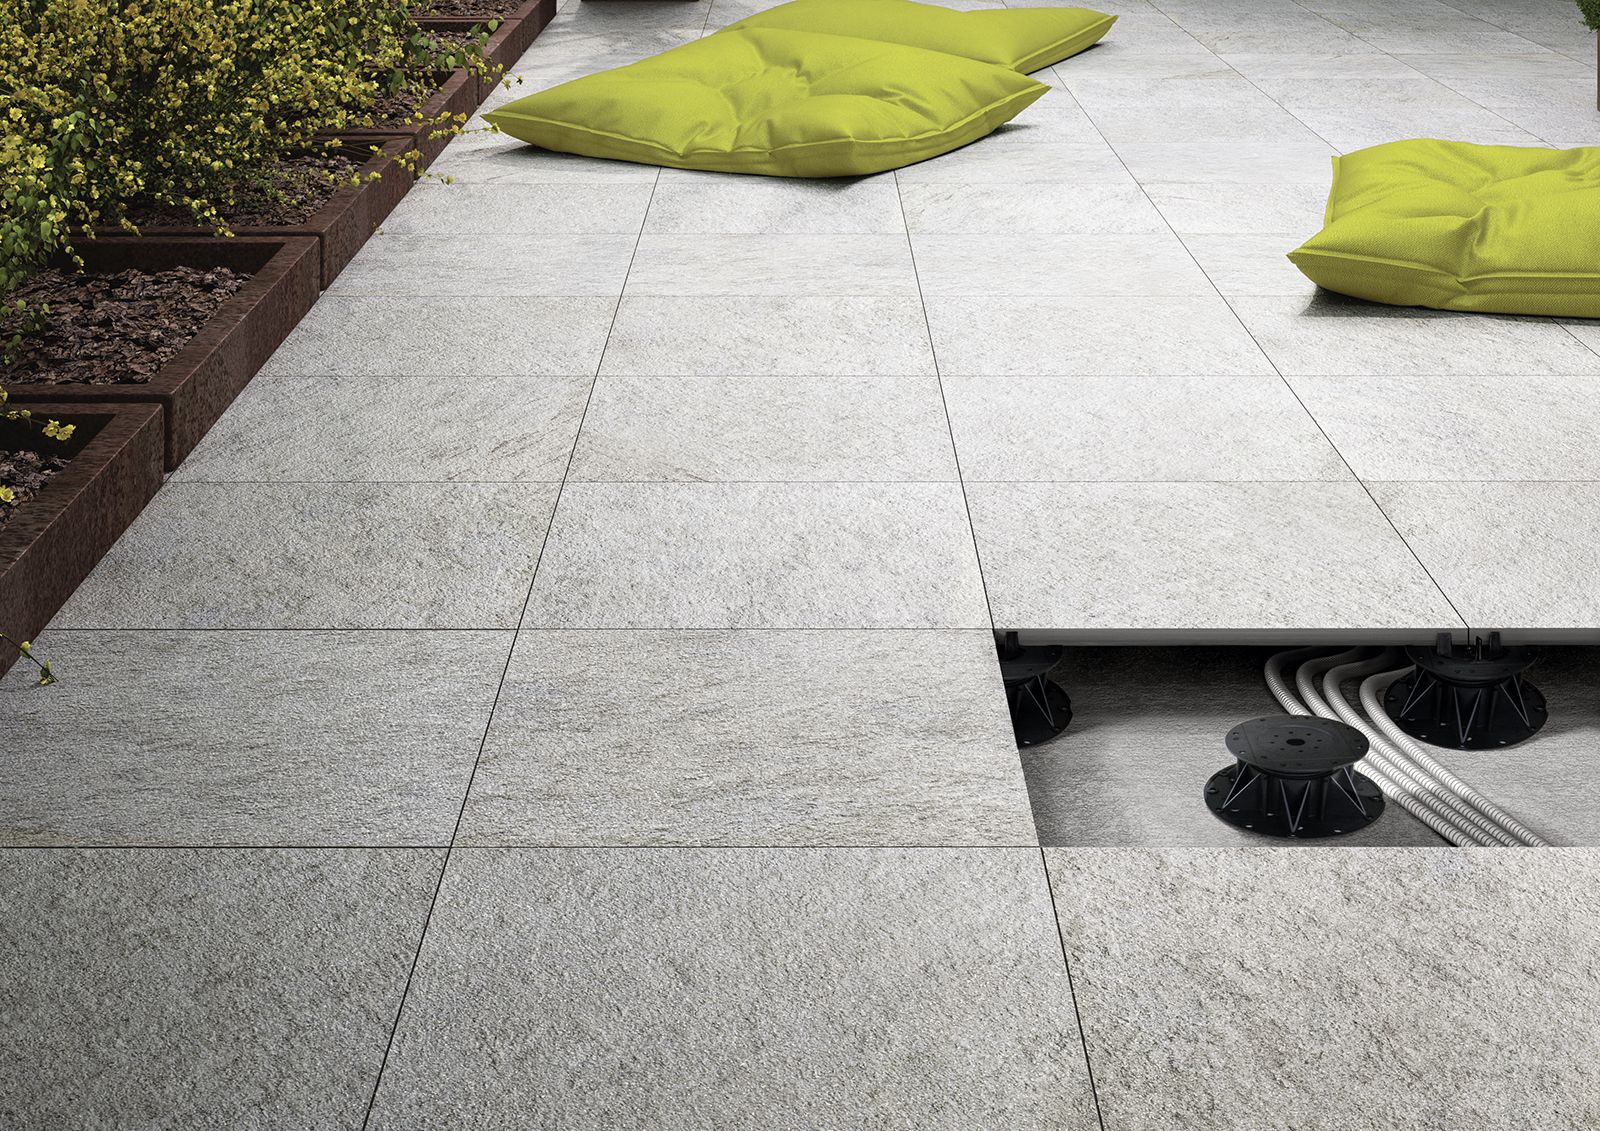 Pin by stone trading on porcelain tile pinterest porcelain outdoor areas porcelain tilesoutdoor dailygadgetfo Gallery